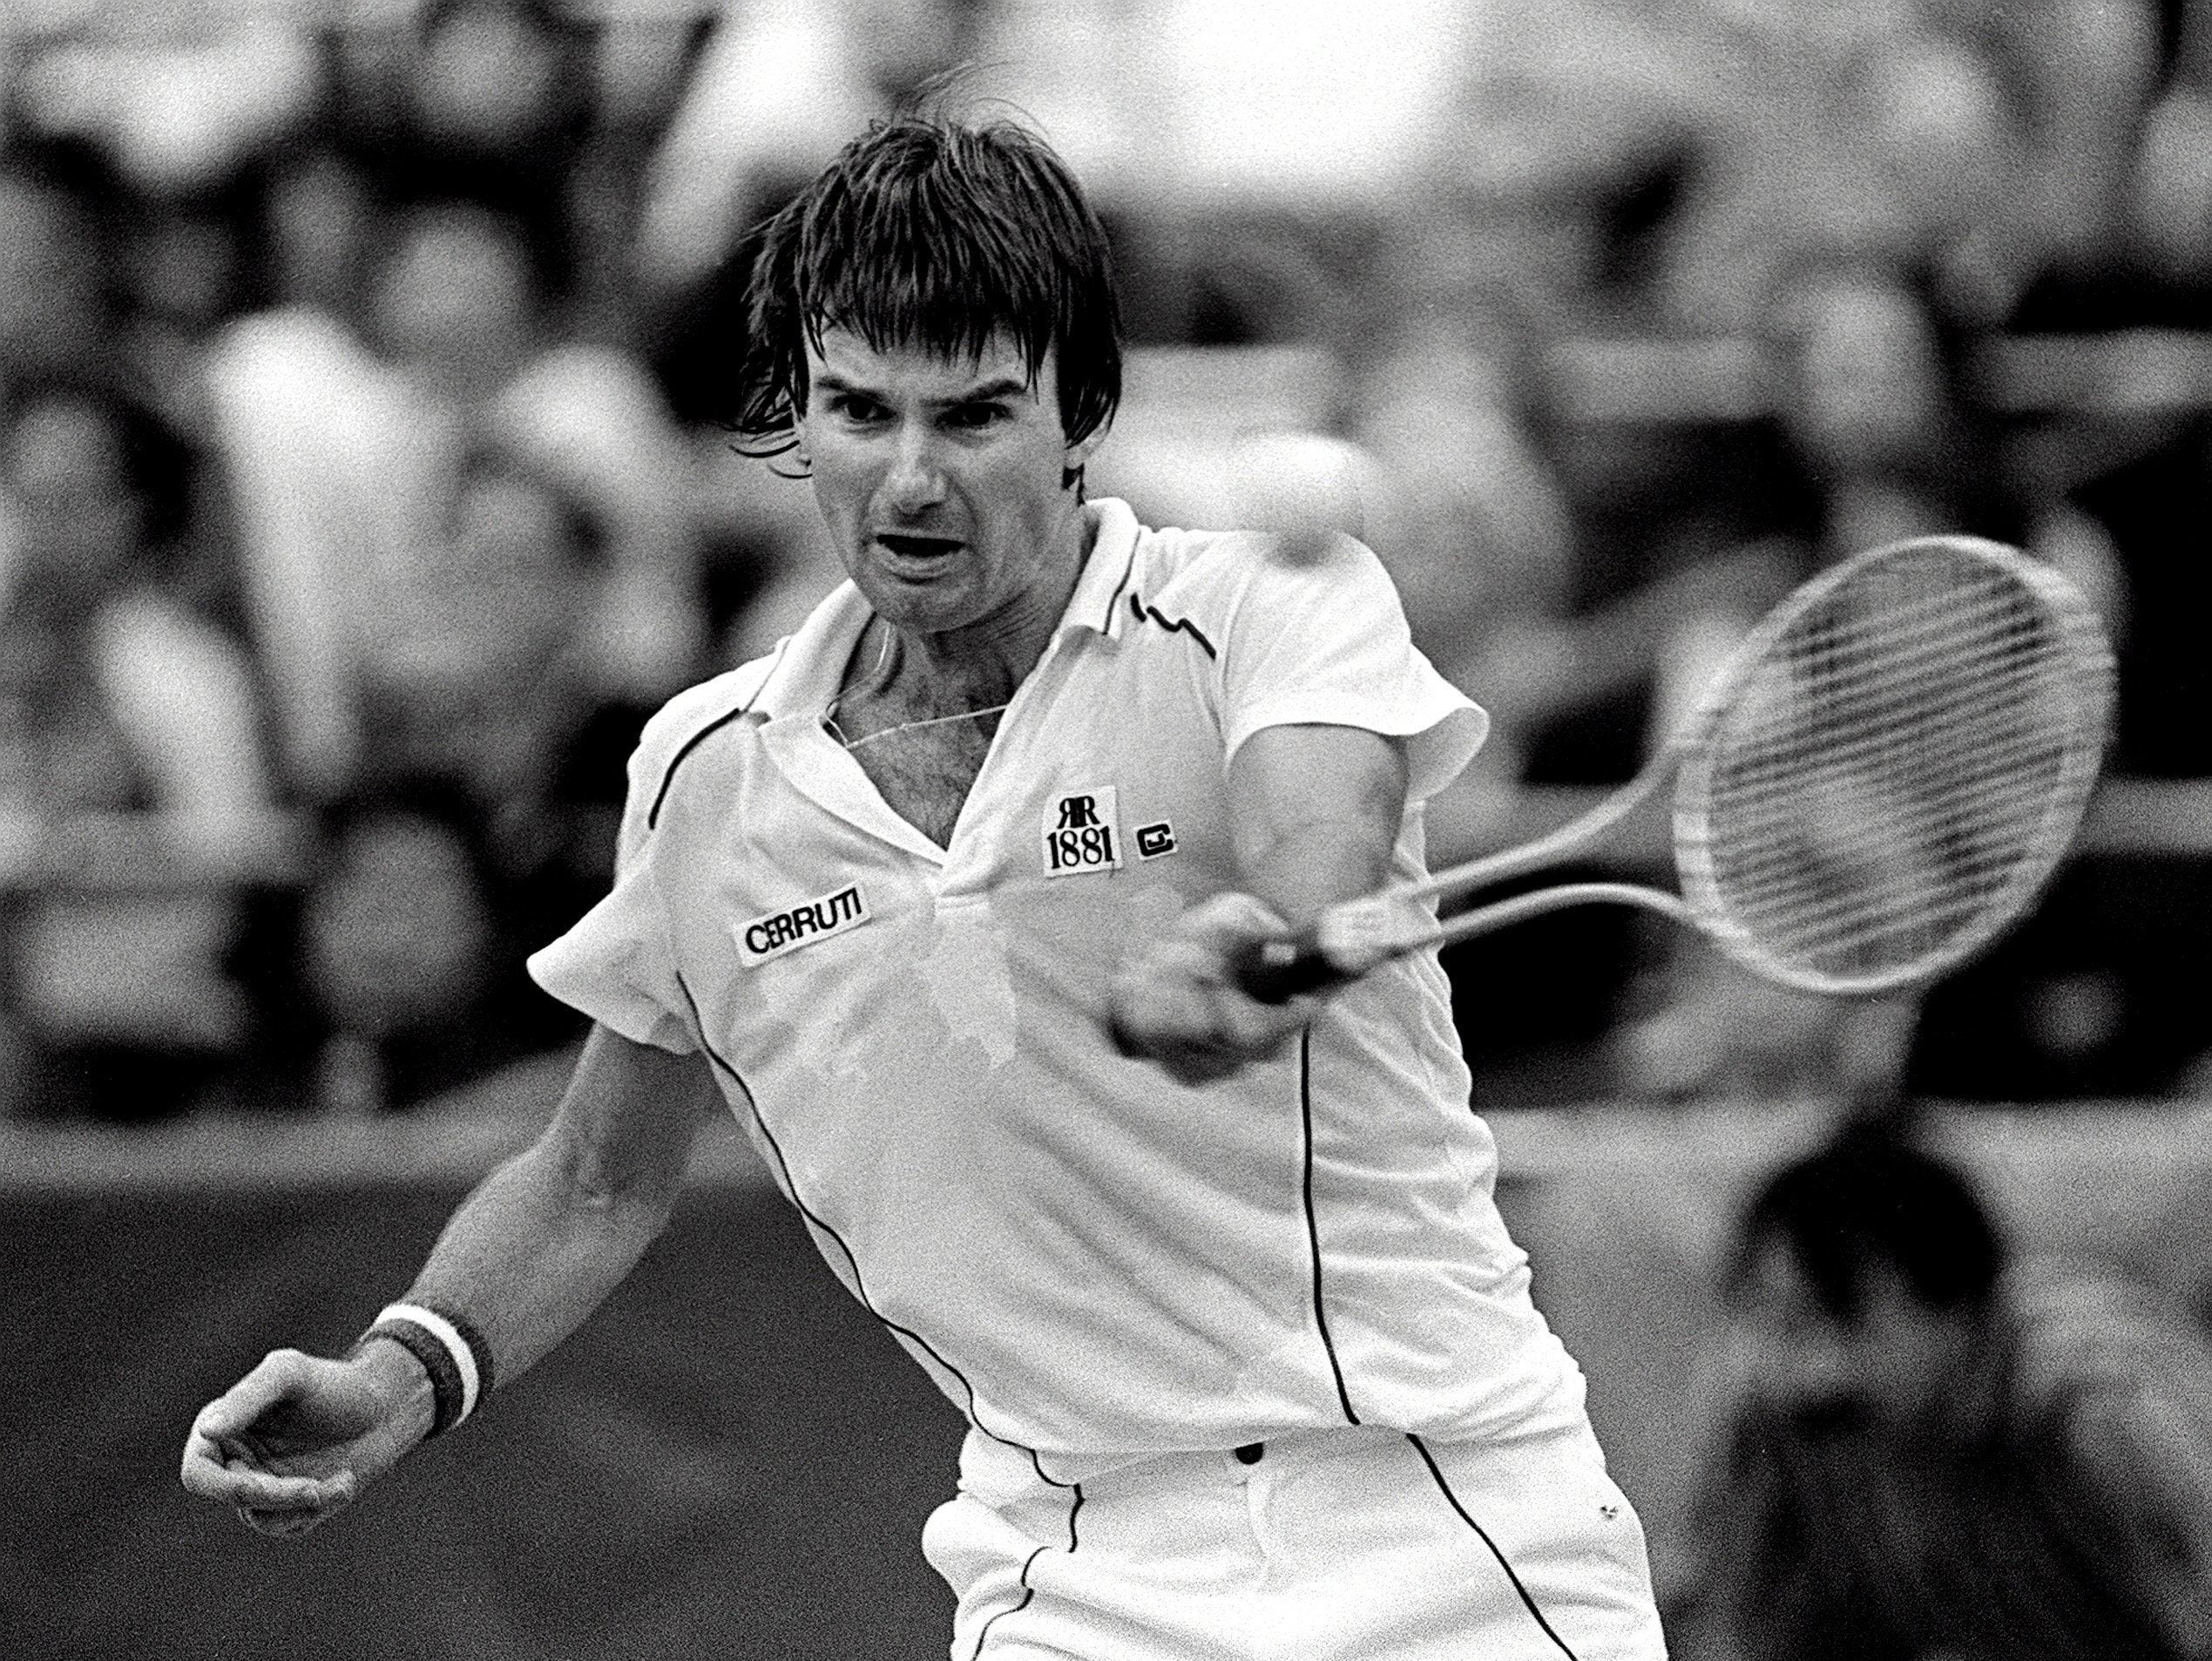 Jimmy Connors hits a forehand against Henri LeConte during the finals of the U.S. National Indoor Tennis Championship at The Racquet Club of Memphis on Feb. 12, 1984. Connors won 6-3, 4-6, 7-5 to capture a record seventh title in the event.